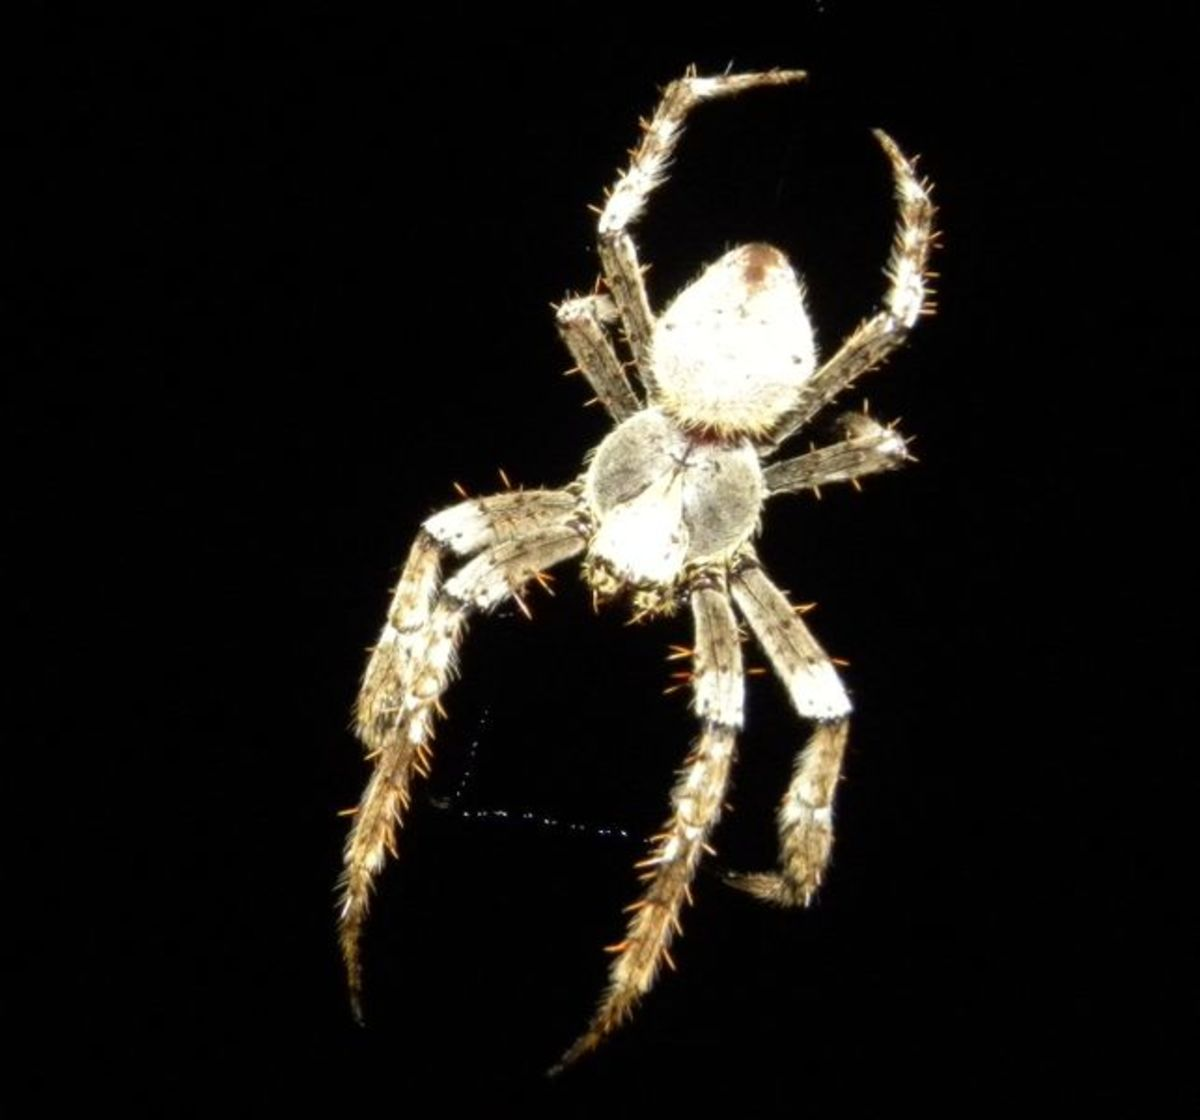 While spiders can be scary, it is best to try to remove them without harming them.